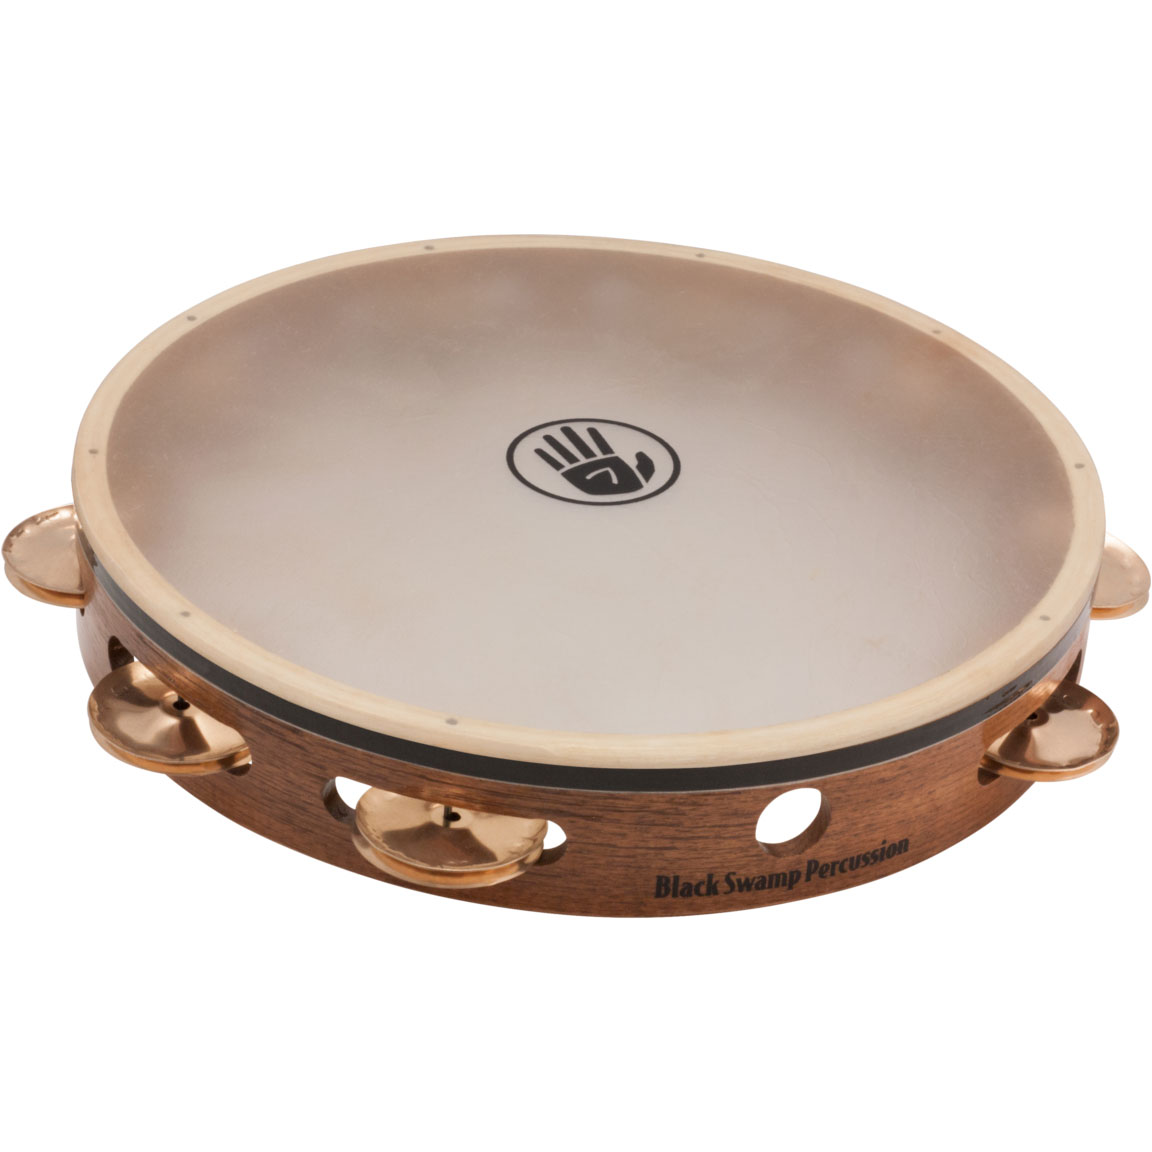 "Black Swamp 10"" SoundArt Single Row Beryllium Copper Tambourine (Natural Head)"